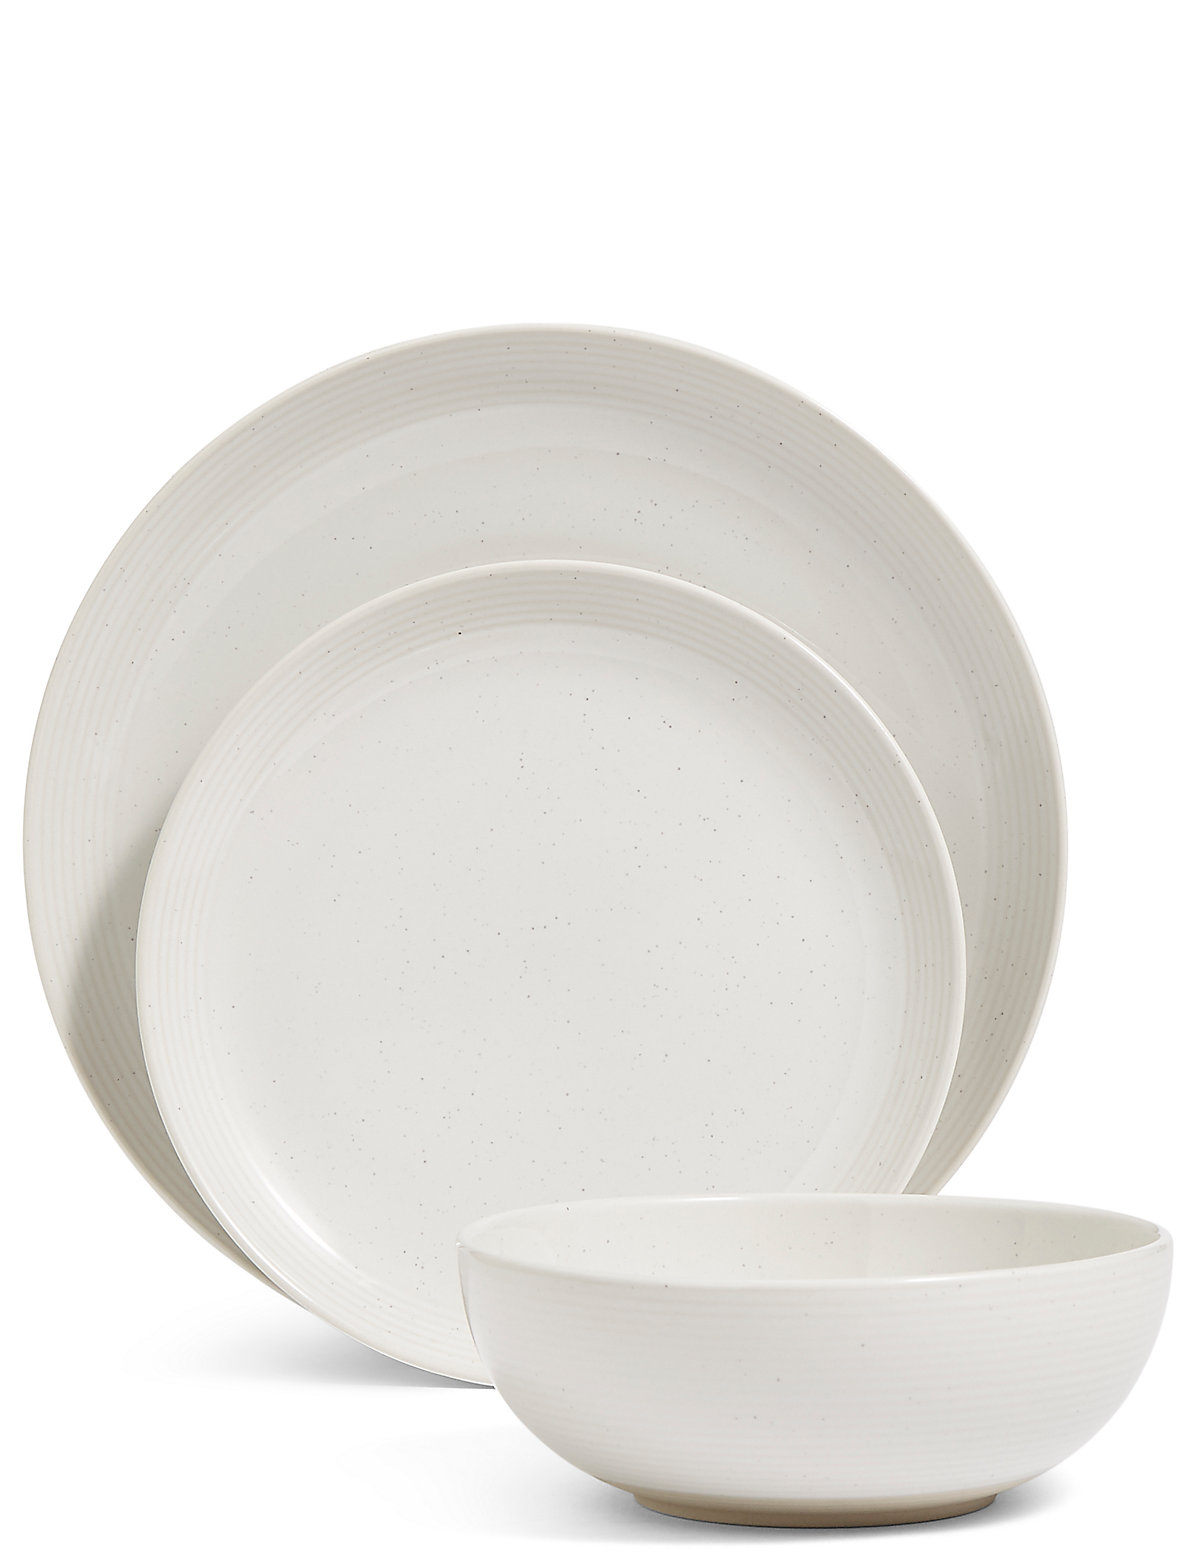 Image of 12 Piece Linear Dinner Set